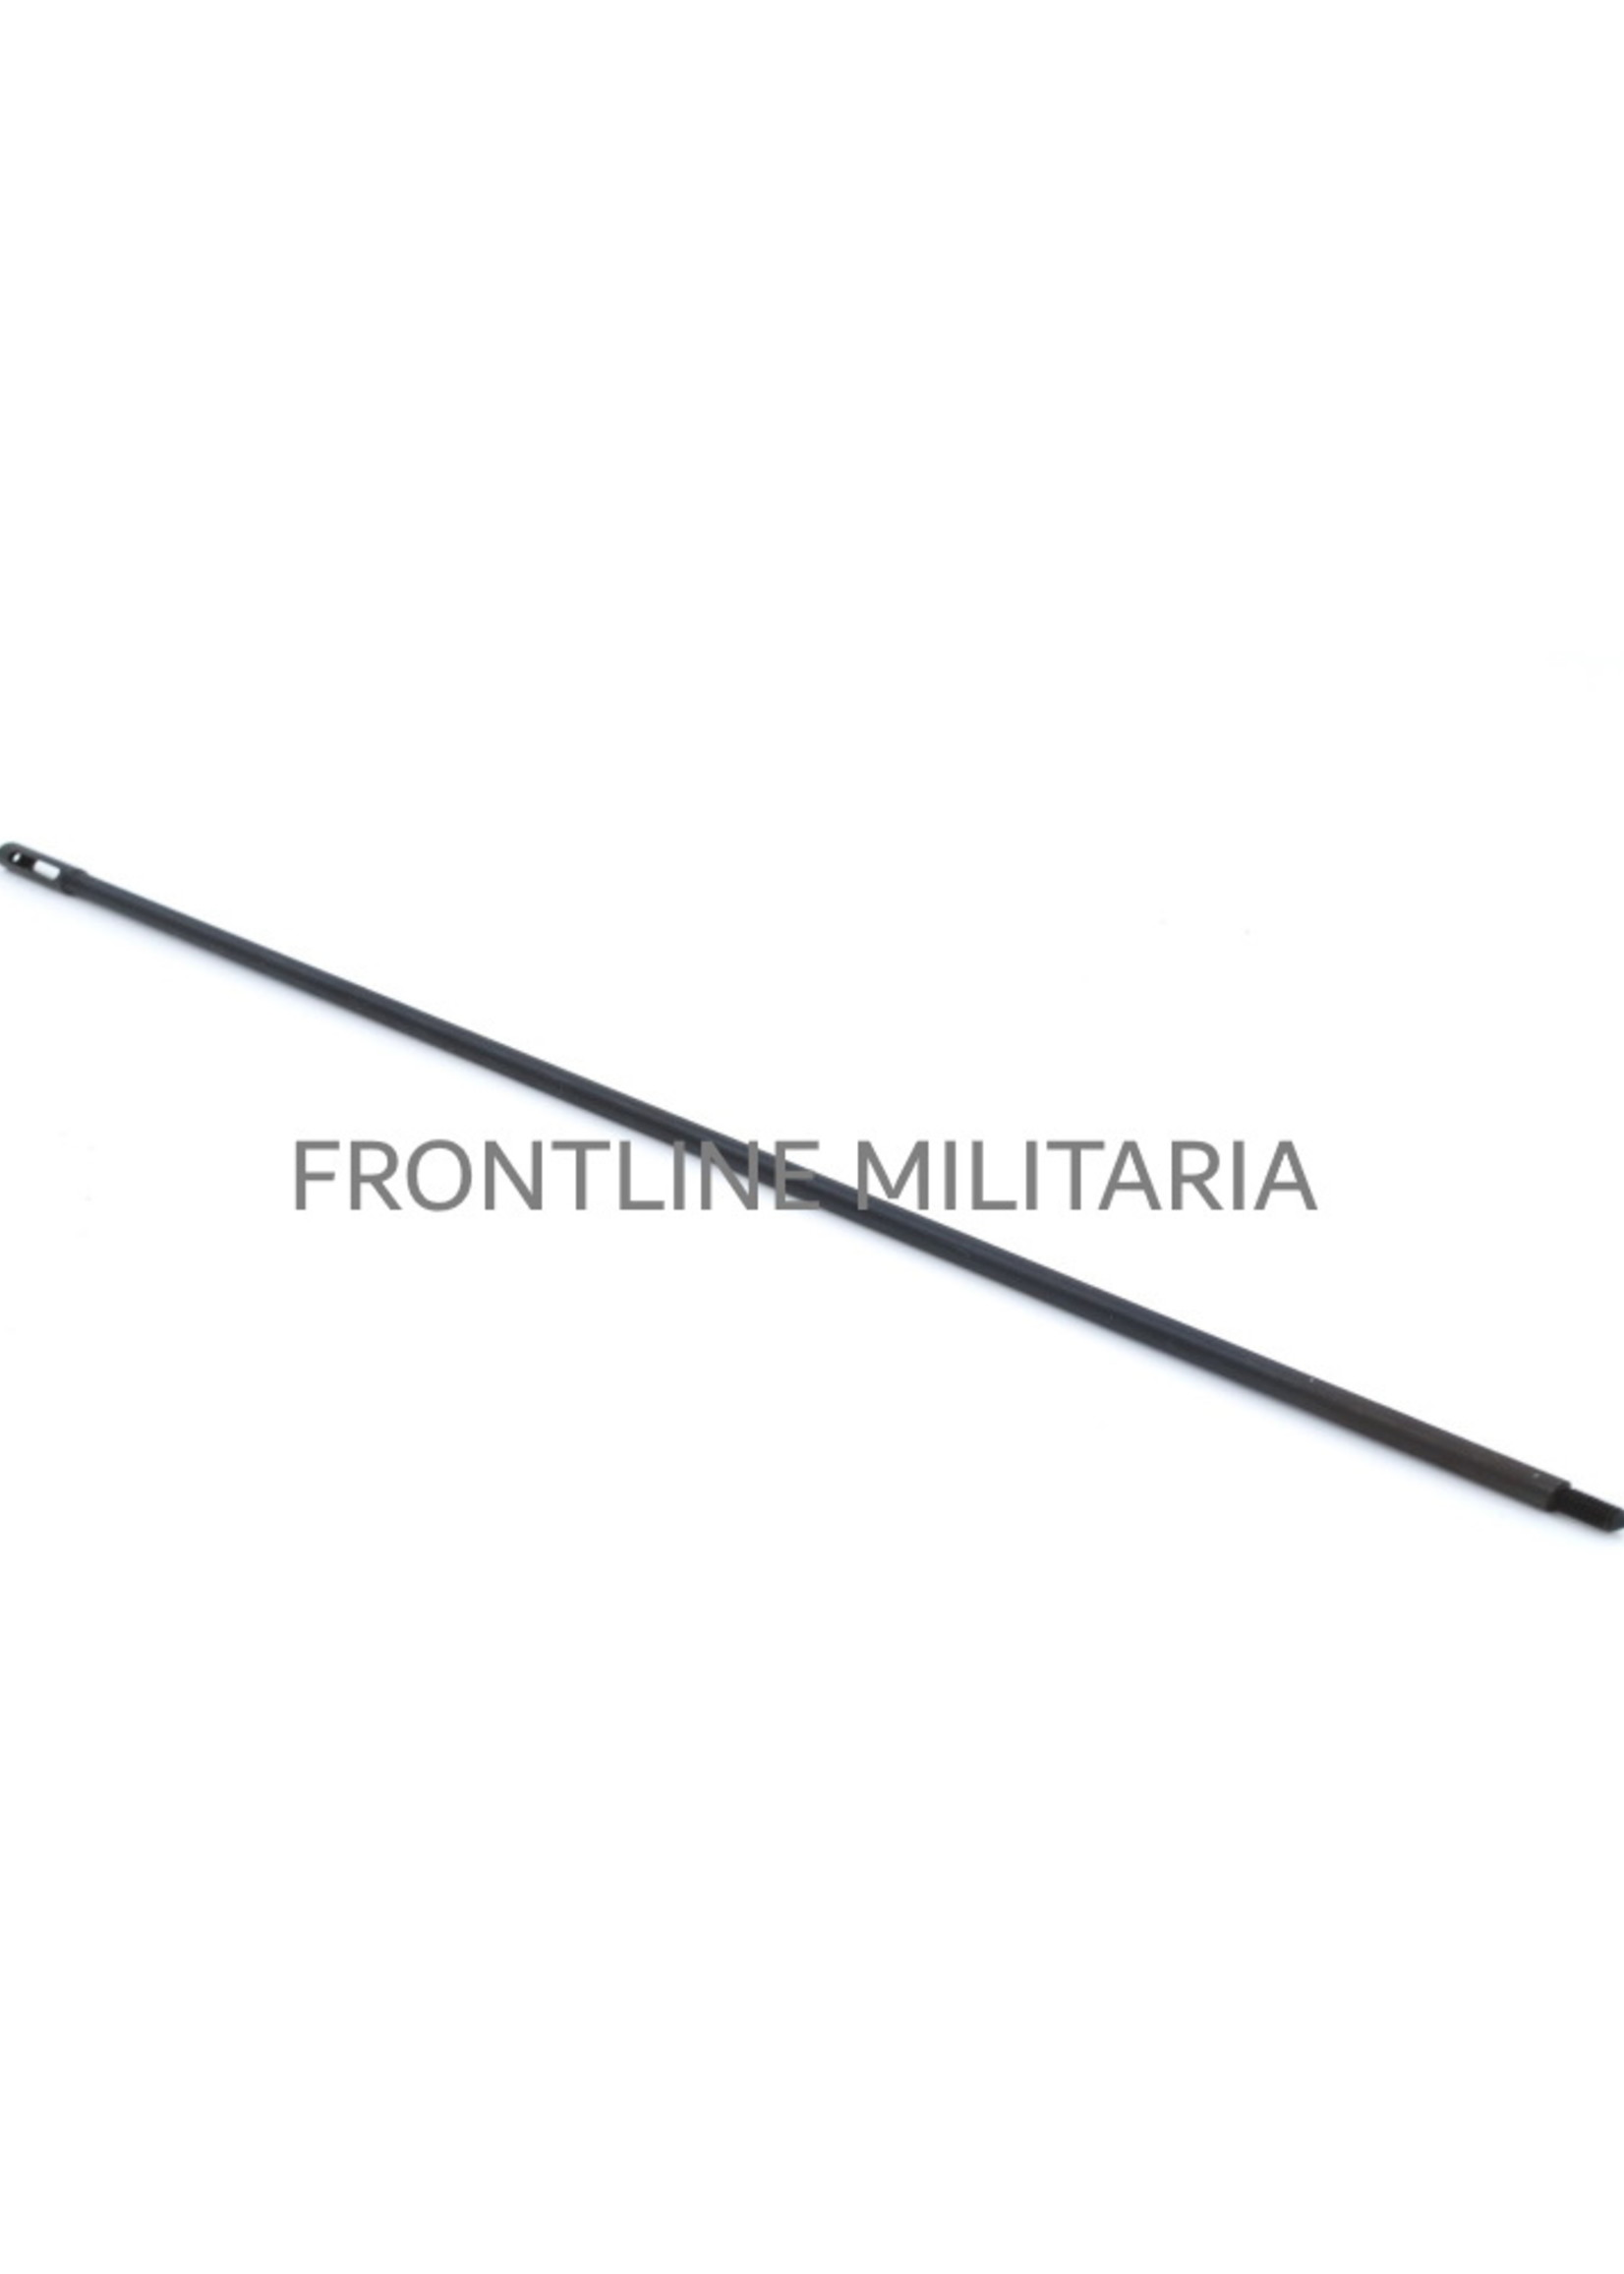 Cleaning rod for the G43 and K43 Rifle